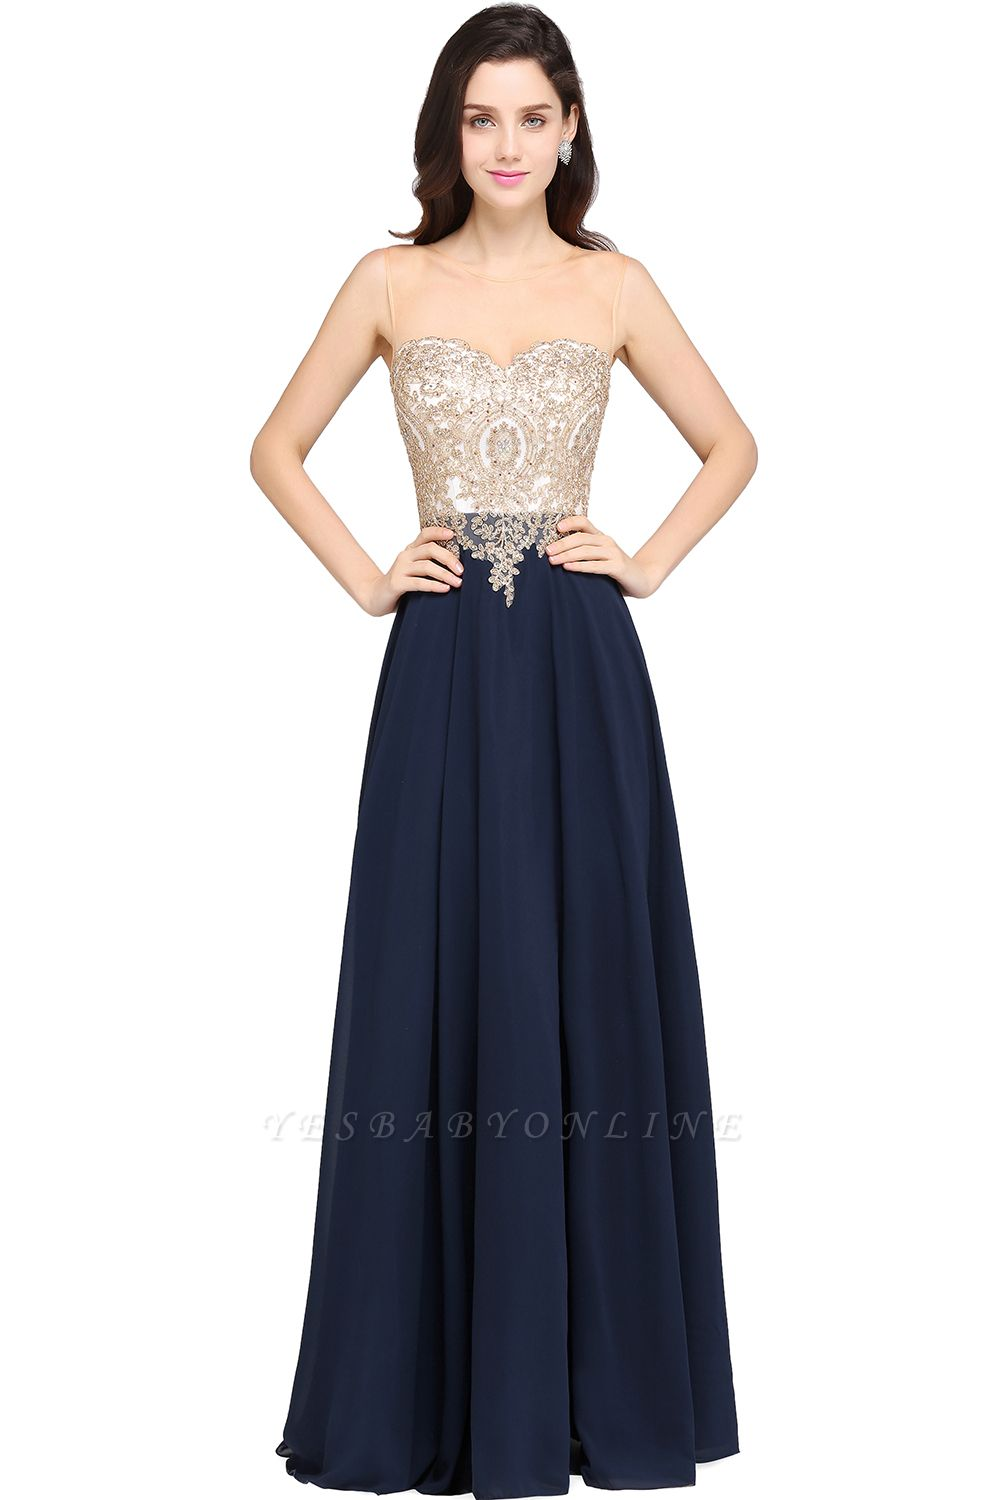 A-Line   Lace Scoop Sleeveless Floor-Length Bridesmaid Dress with Beadings